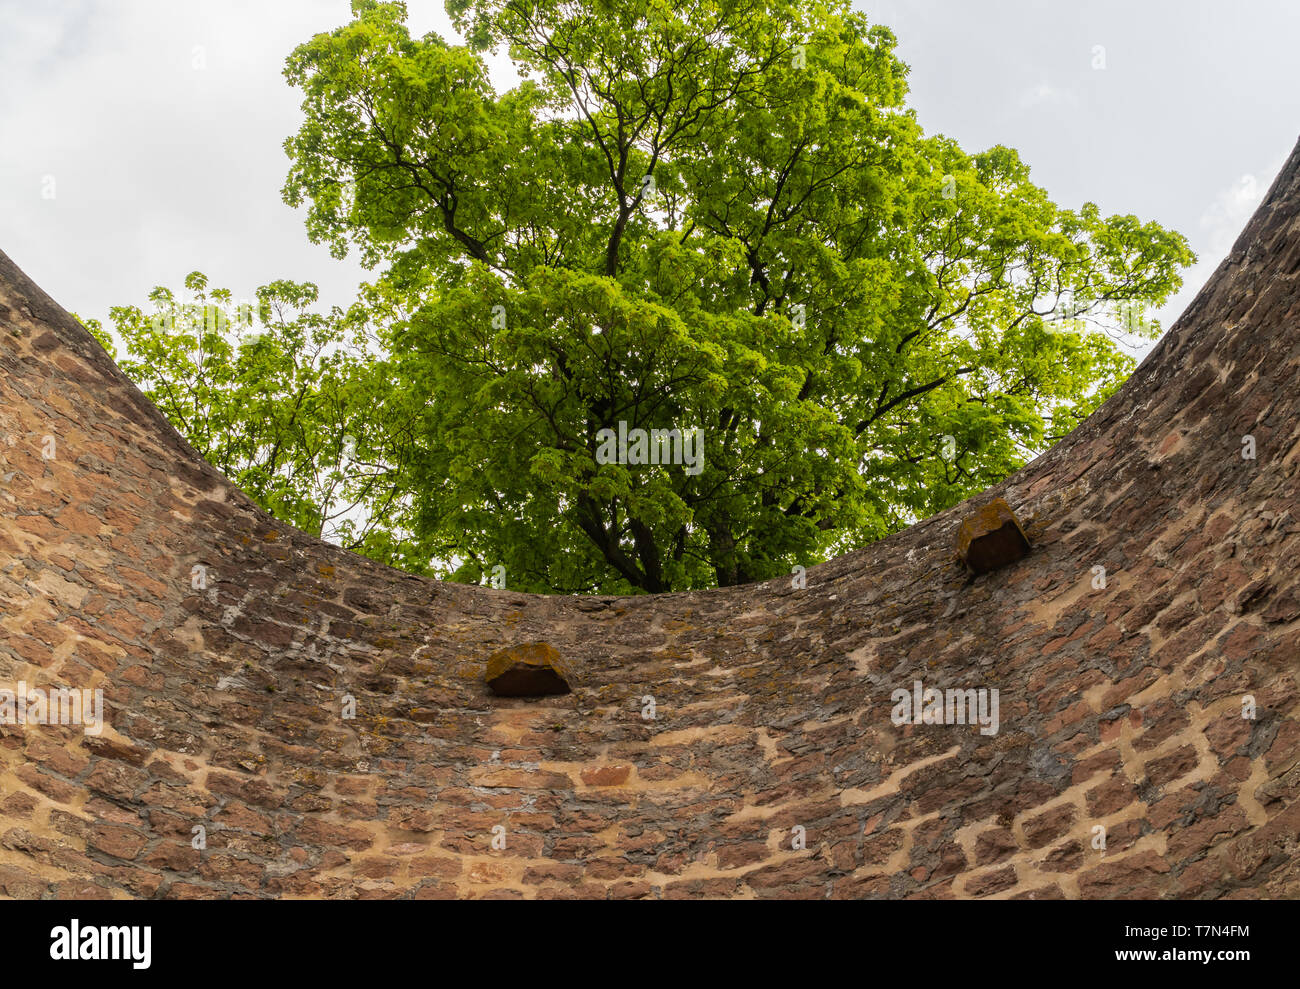 A historic, stone tower. Medieval castle. A fragment of the castle. Ruins. - Stock Image